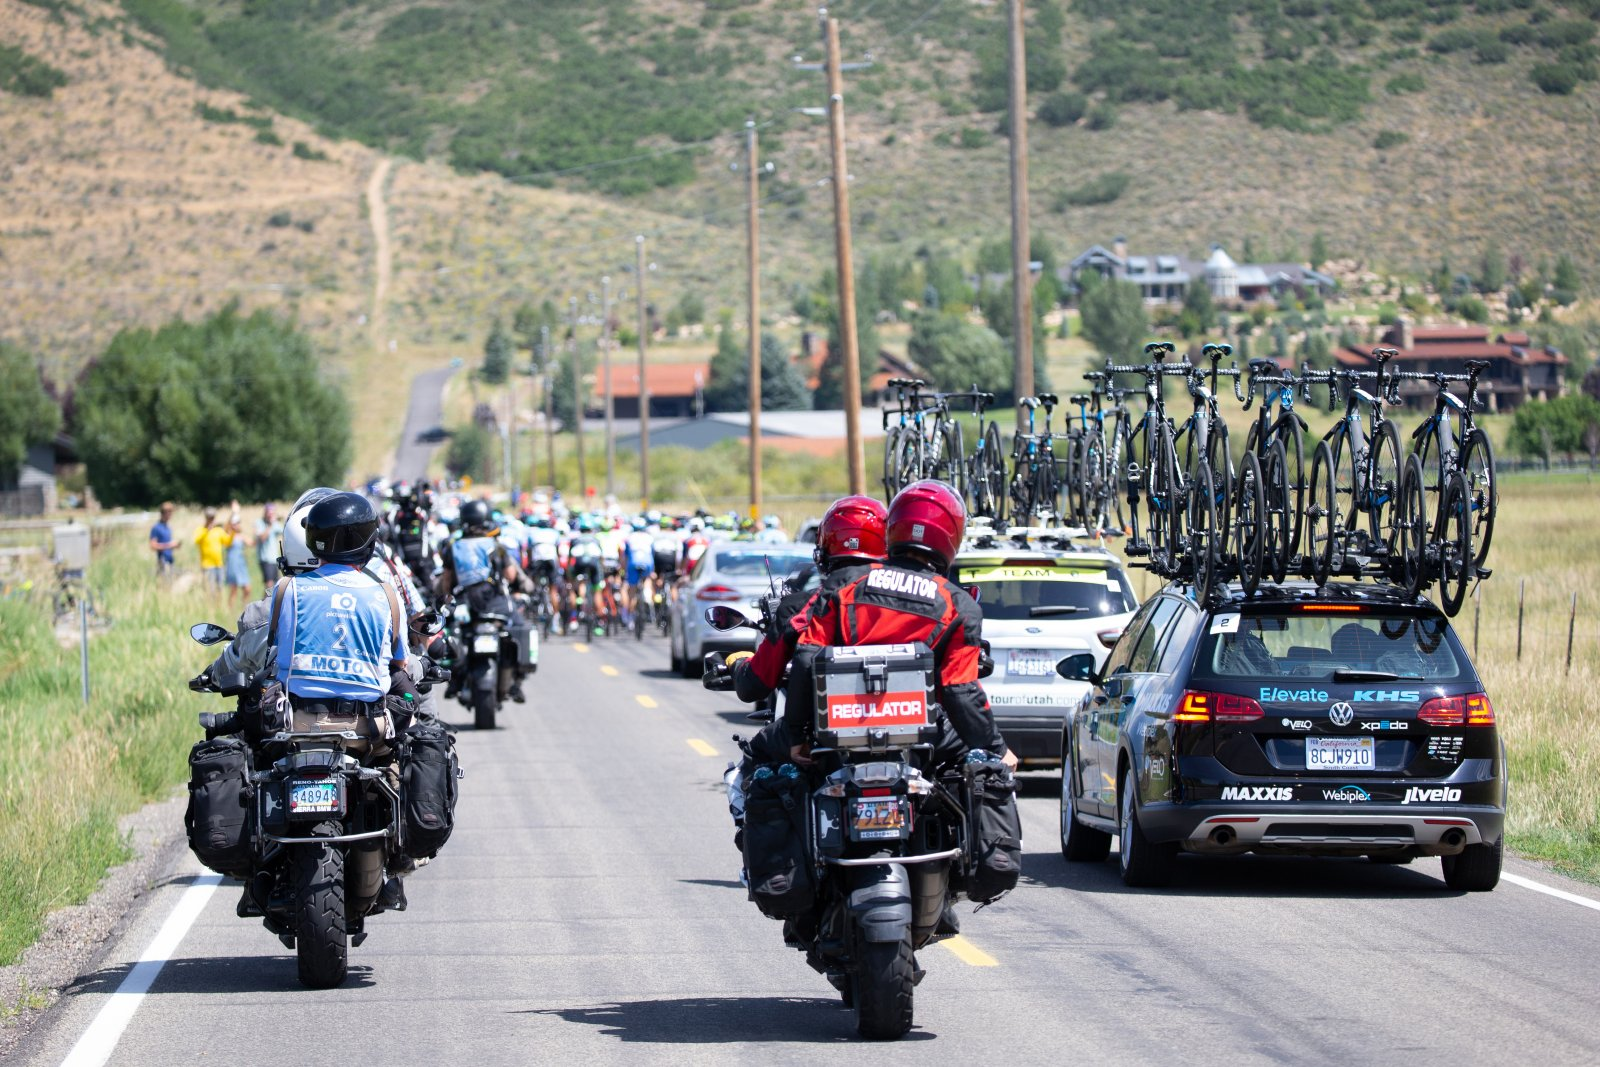 Photo Motos line up at the back of the peloton patiently waiting for the right timing to pass.